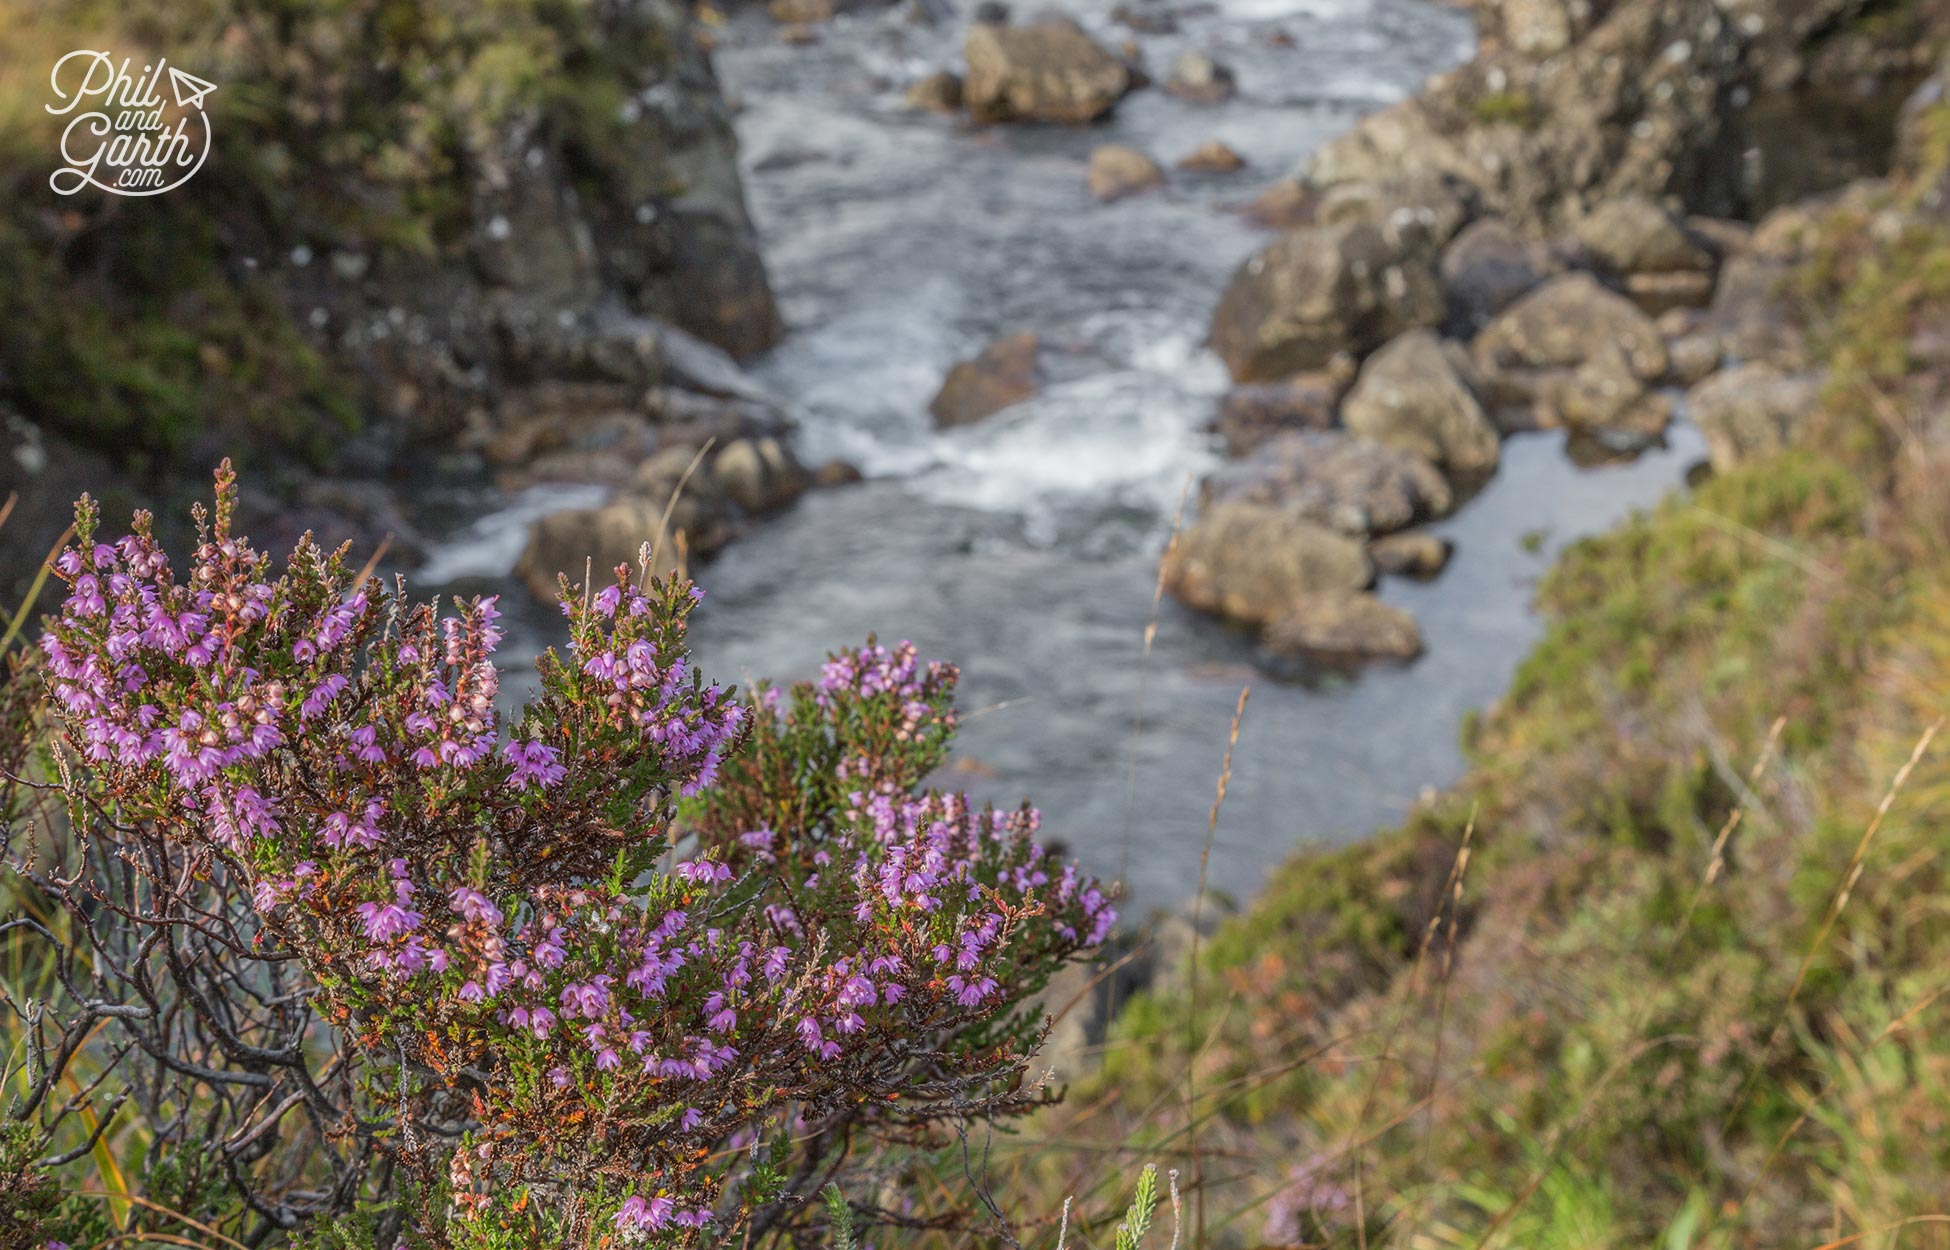 September is the perfect month to see Scottish heather in full bloom